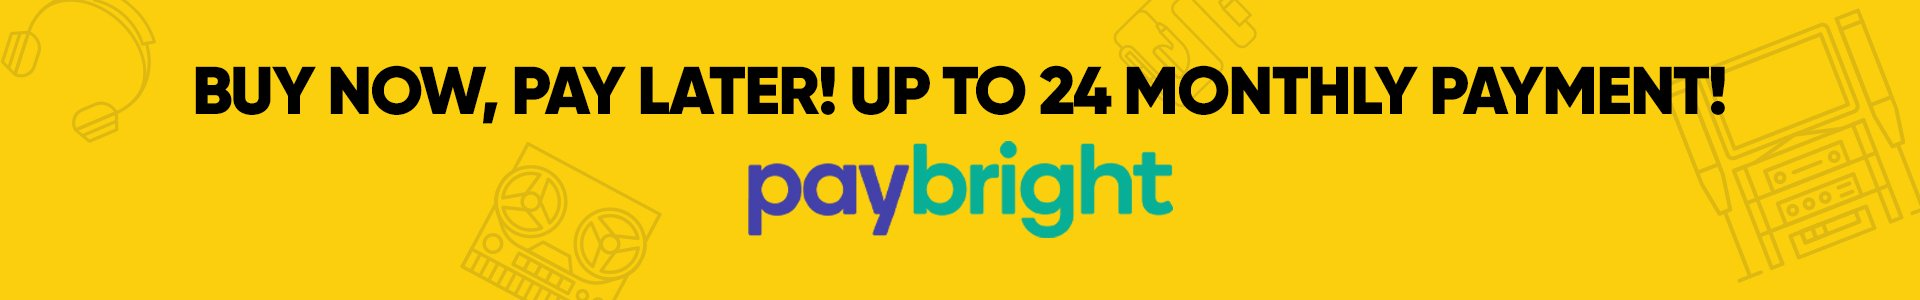 PAYBRIGHT BANNER WEBSITE